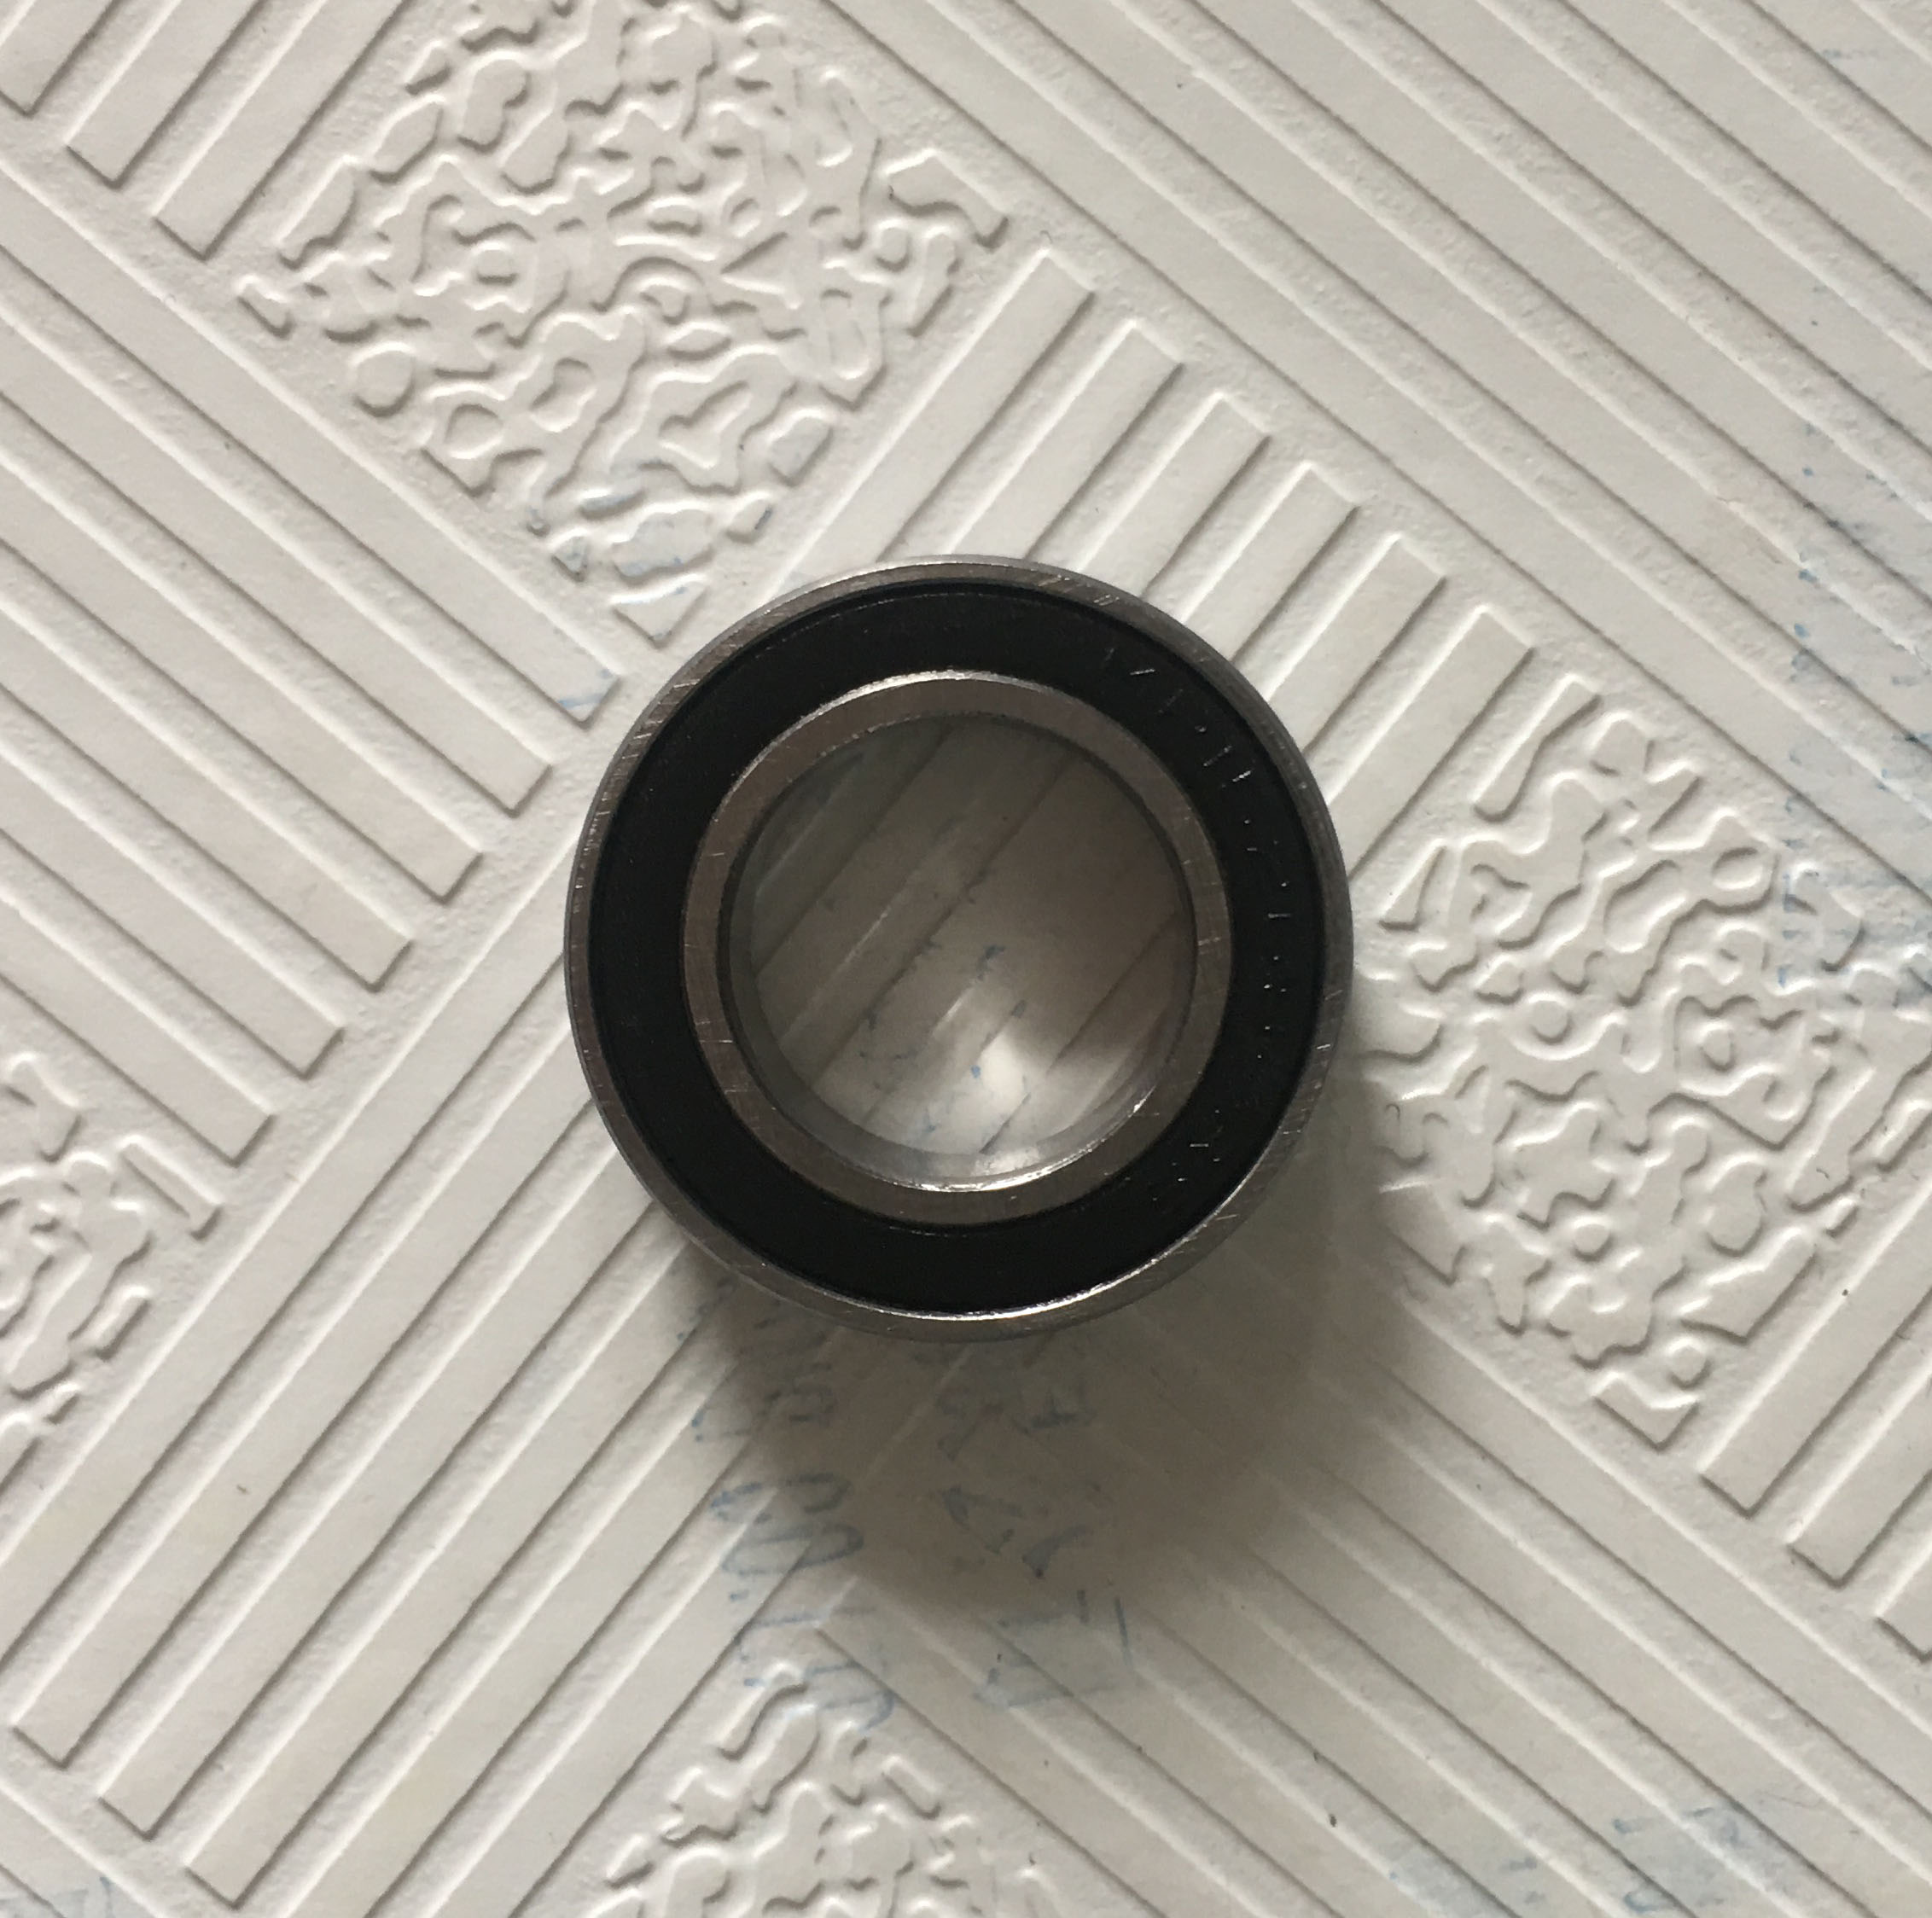 Free Shipping 2 PCS S6010-2RS Bearings 50x80x16 mm Rubber Seal Stainless Steel Ball Bearings цена